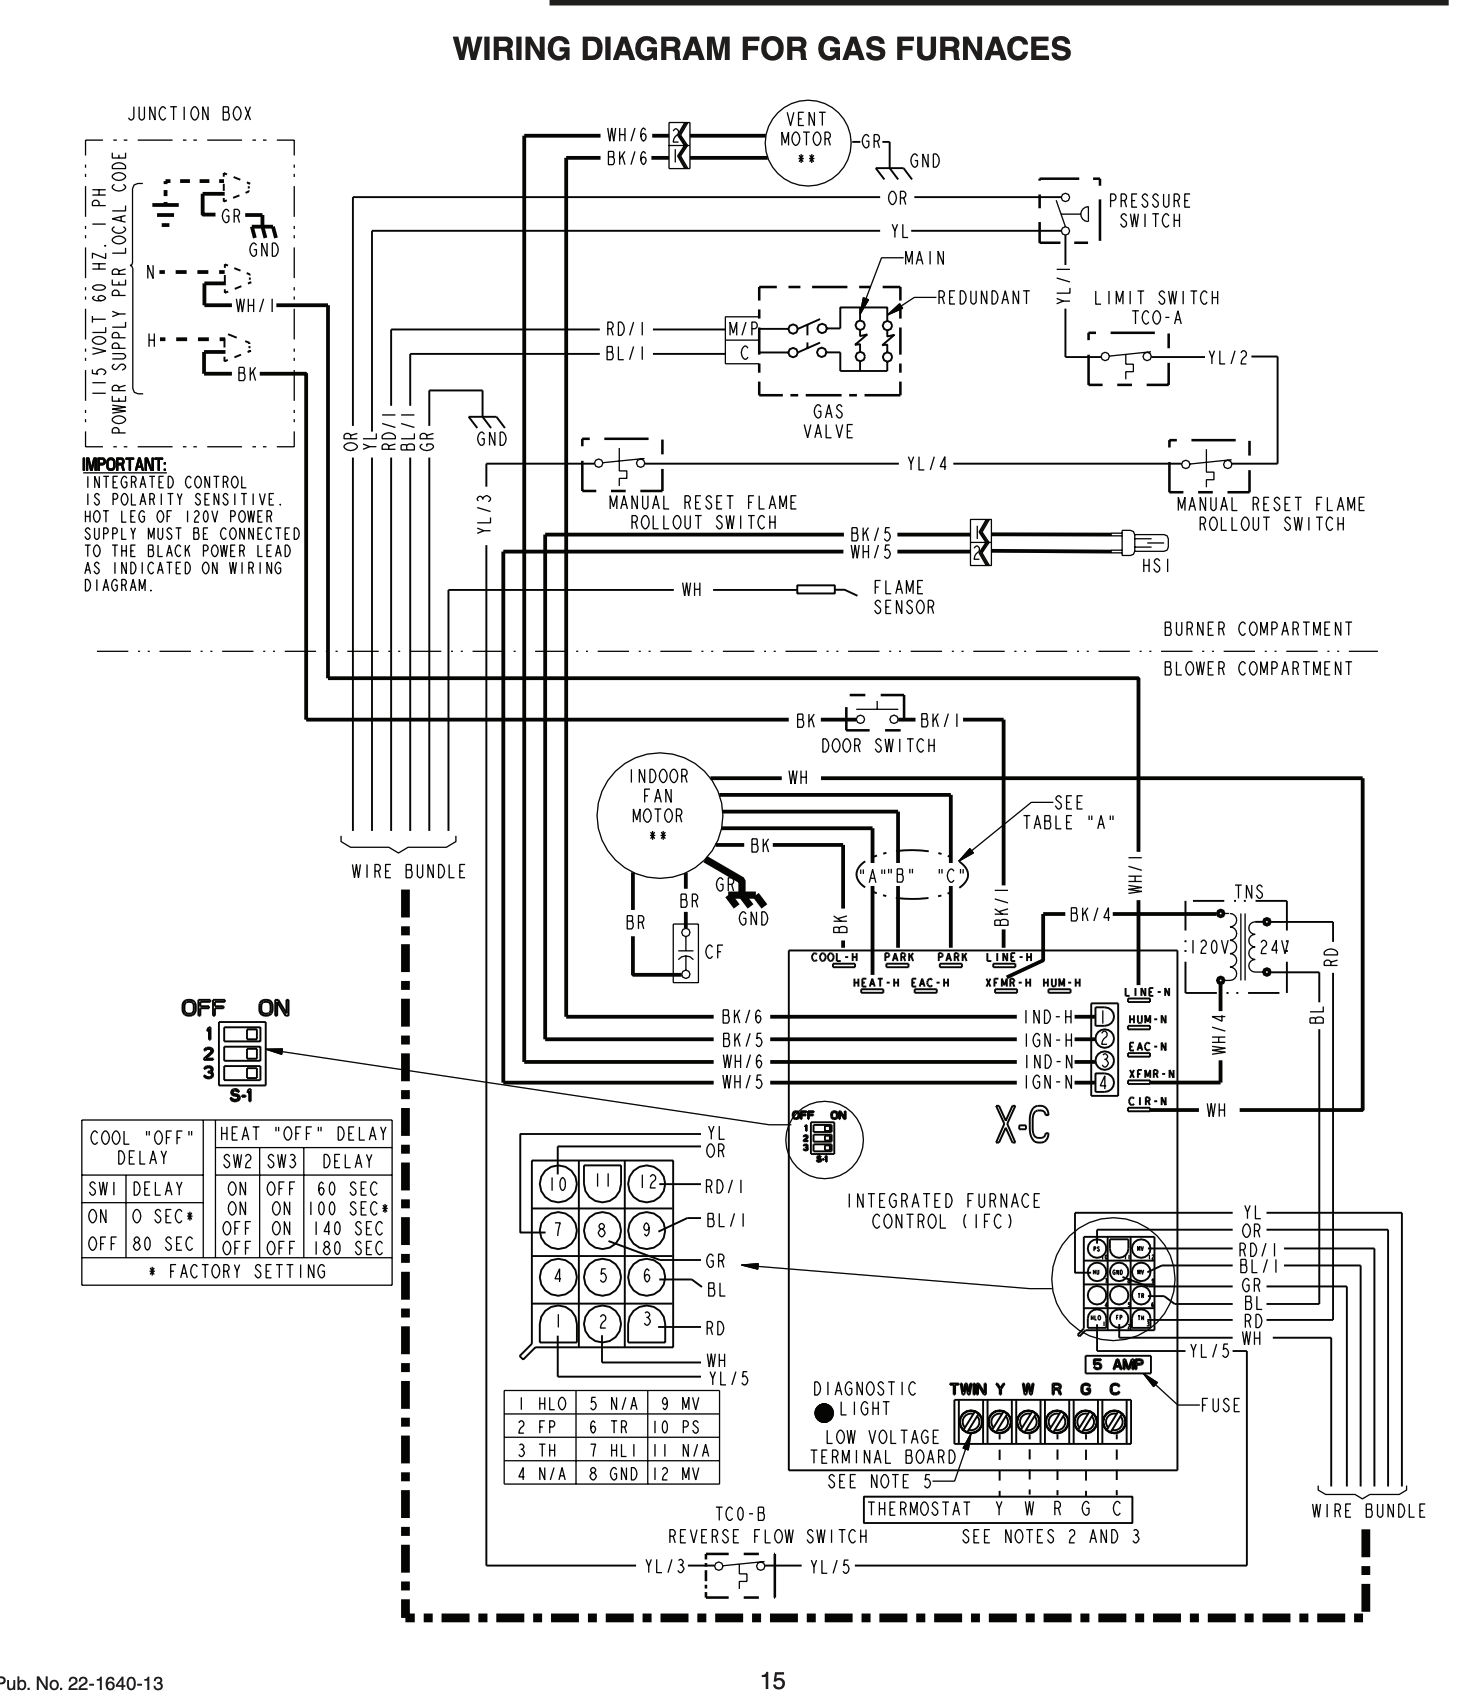 Wiring Diagram Trane Split System - All Wiring Diagram